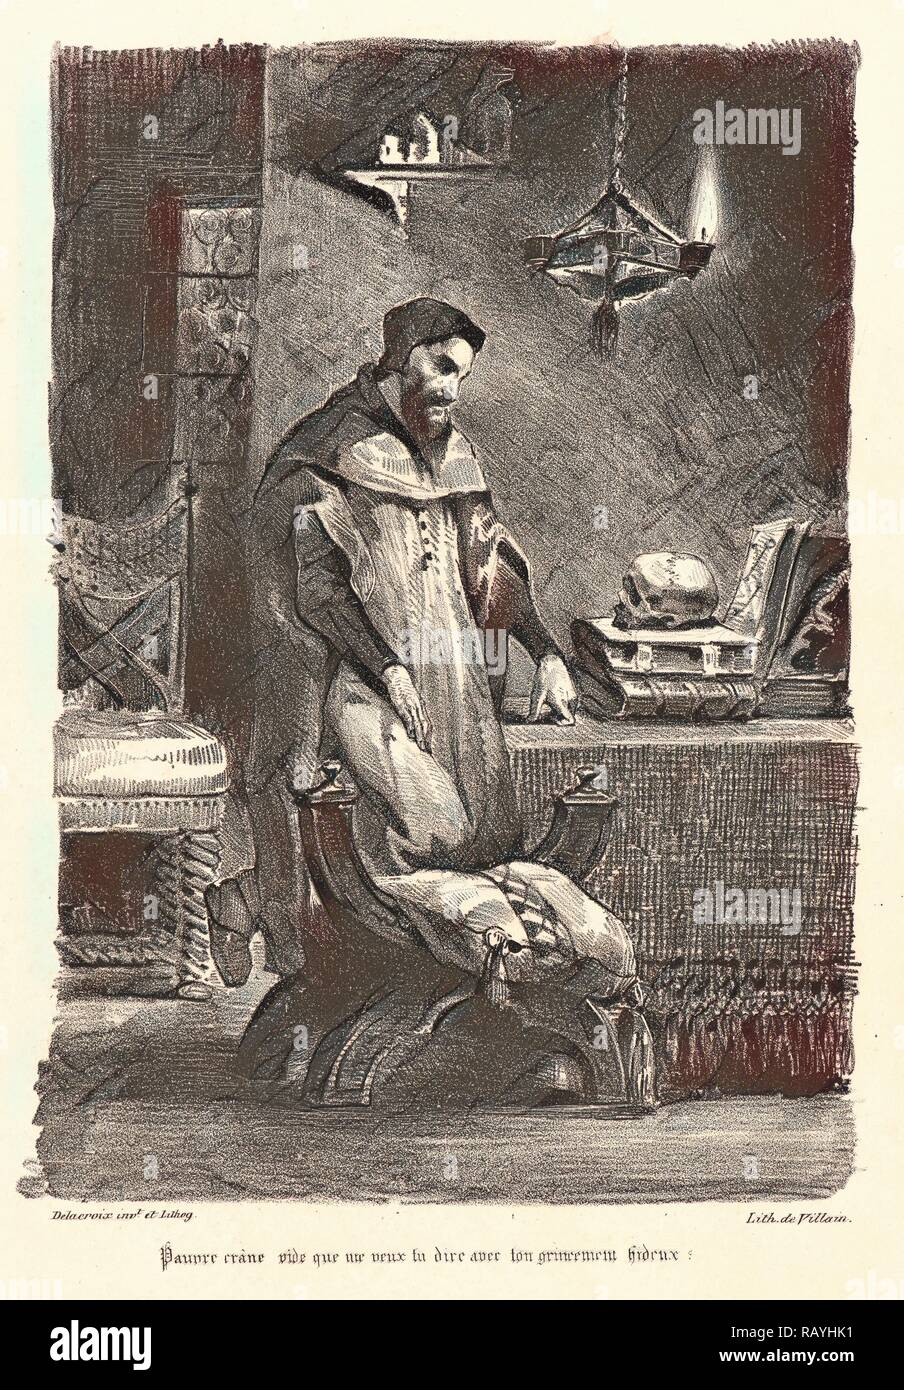 Eugène Delacroix (French, 1798 - 1863). Faust in His Study (Faust dans son cabinet), 1828. From Faust. Lithograph reimagined - Stock Image